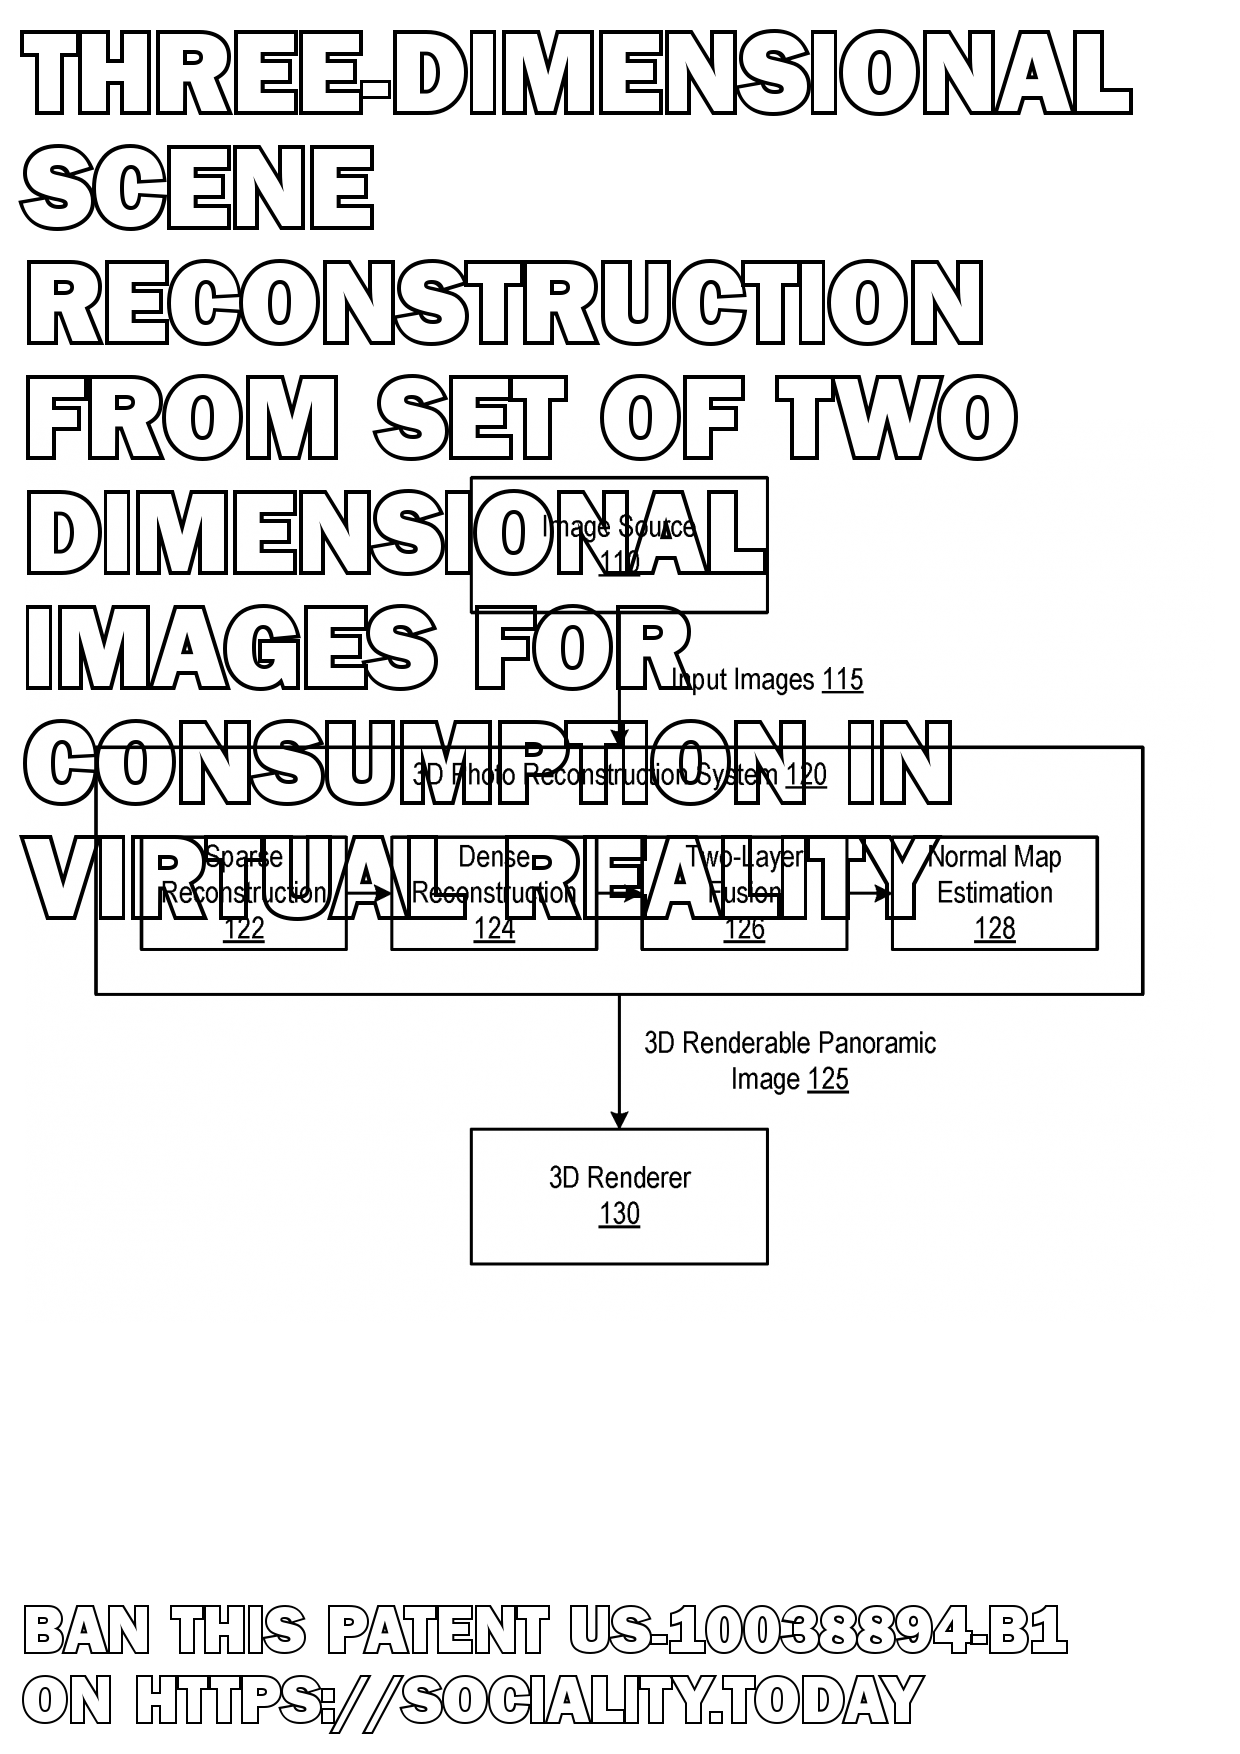 Three-dimensional scene reconstruction from set of two dimensional images for consumption in virtual reality  - US-10038894-B1